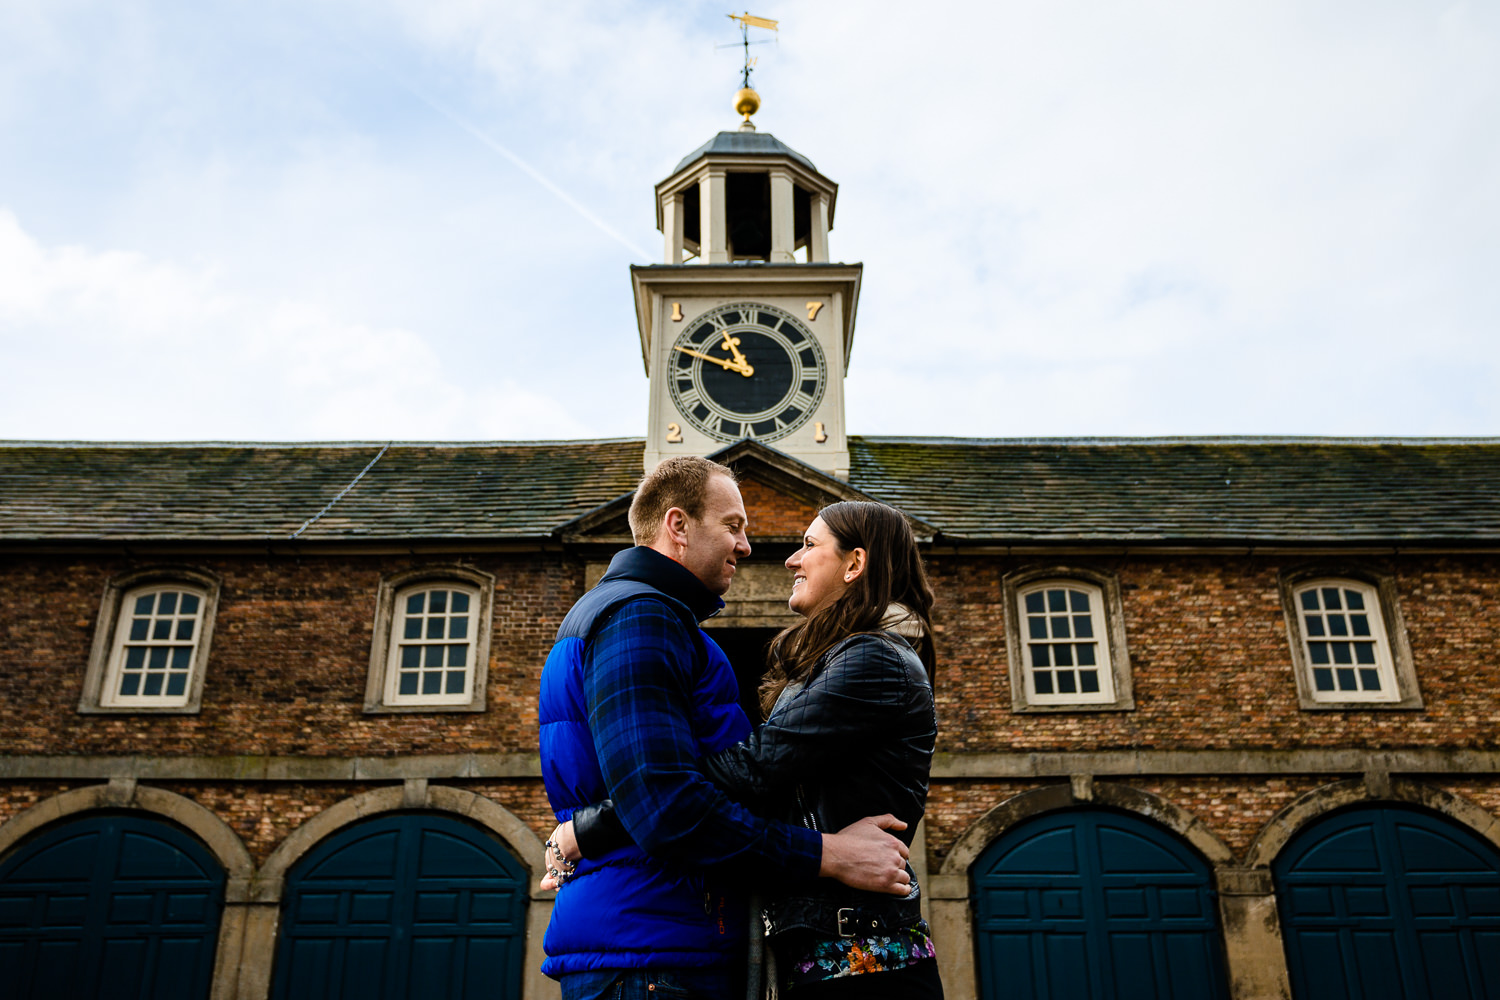 Claire & Damien cuddle in front of the clock tower at Dunham Massey on their pre wedding shoot.